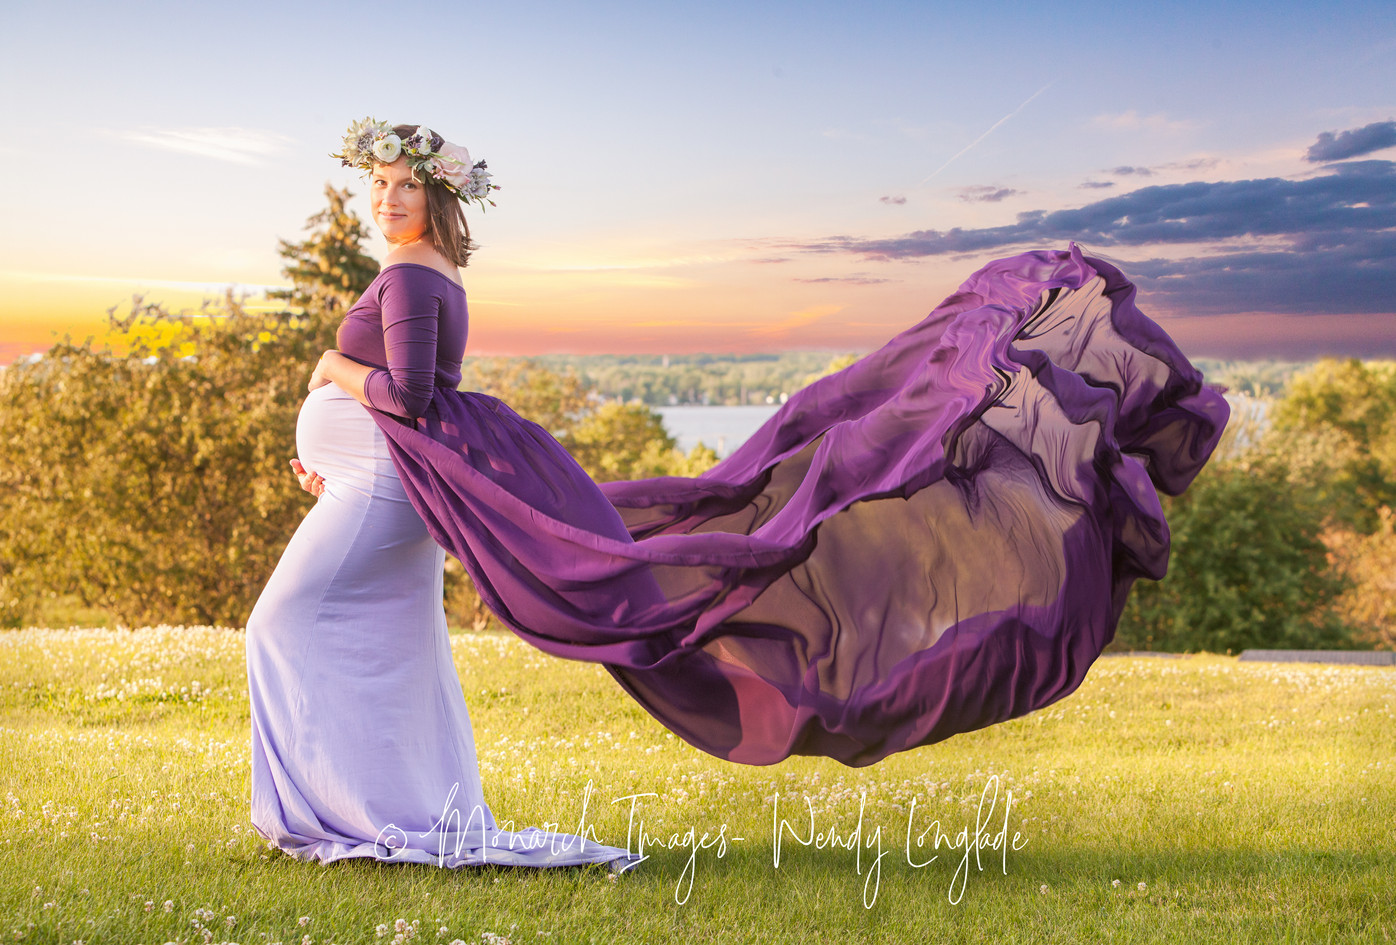 Ceilidh maternity-503-Edit.jpg